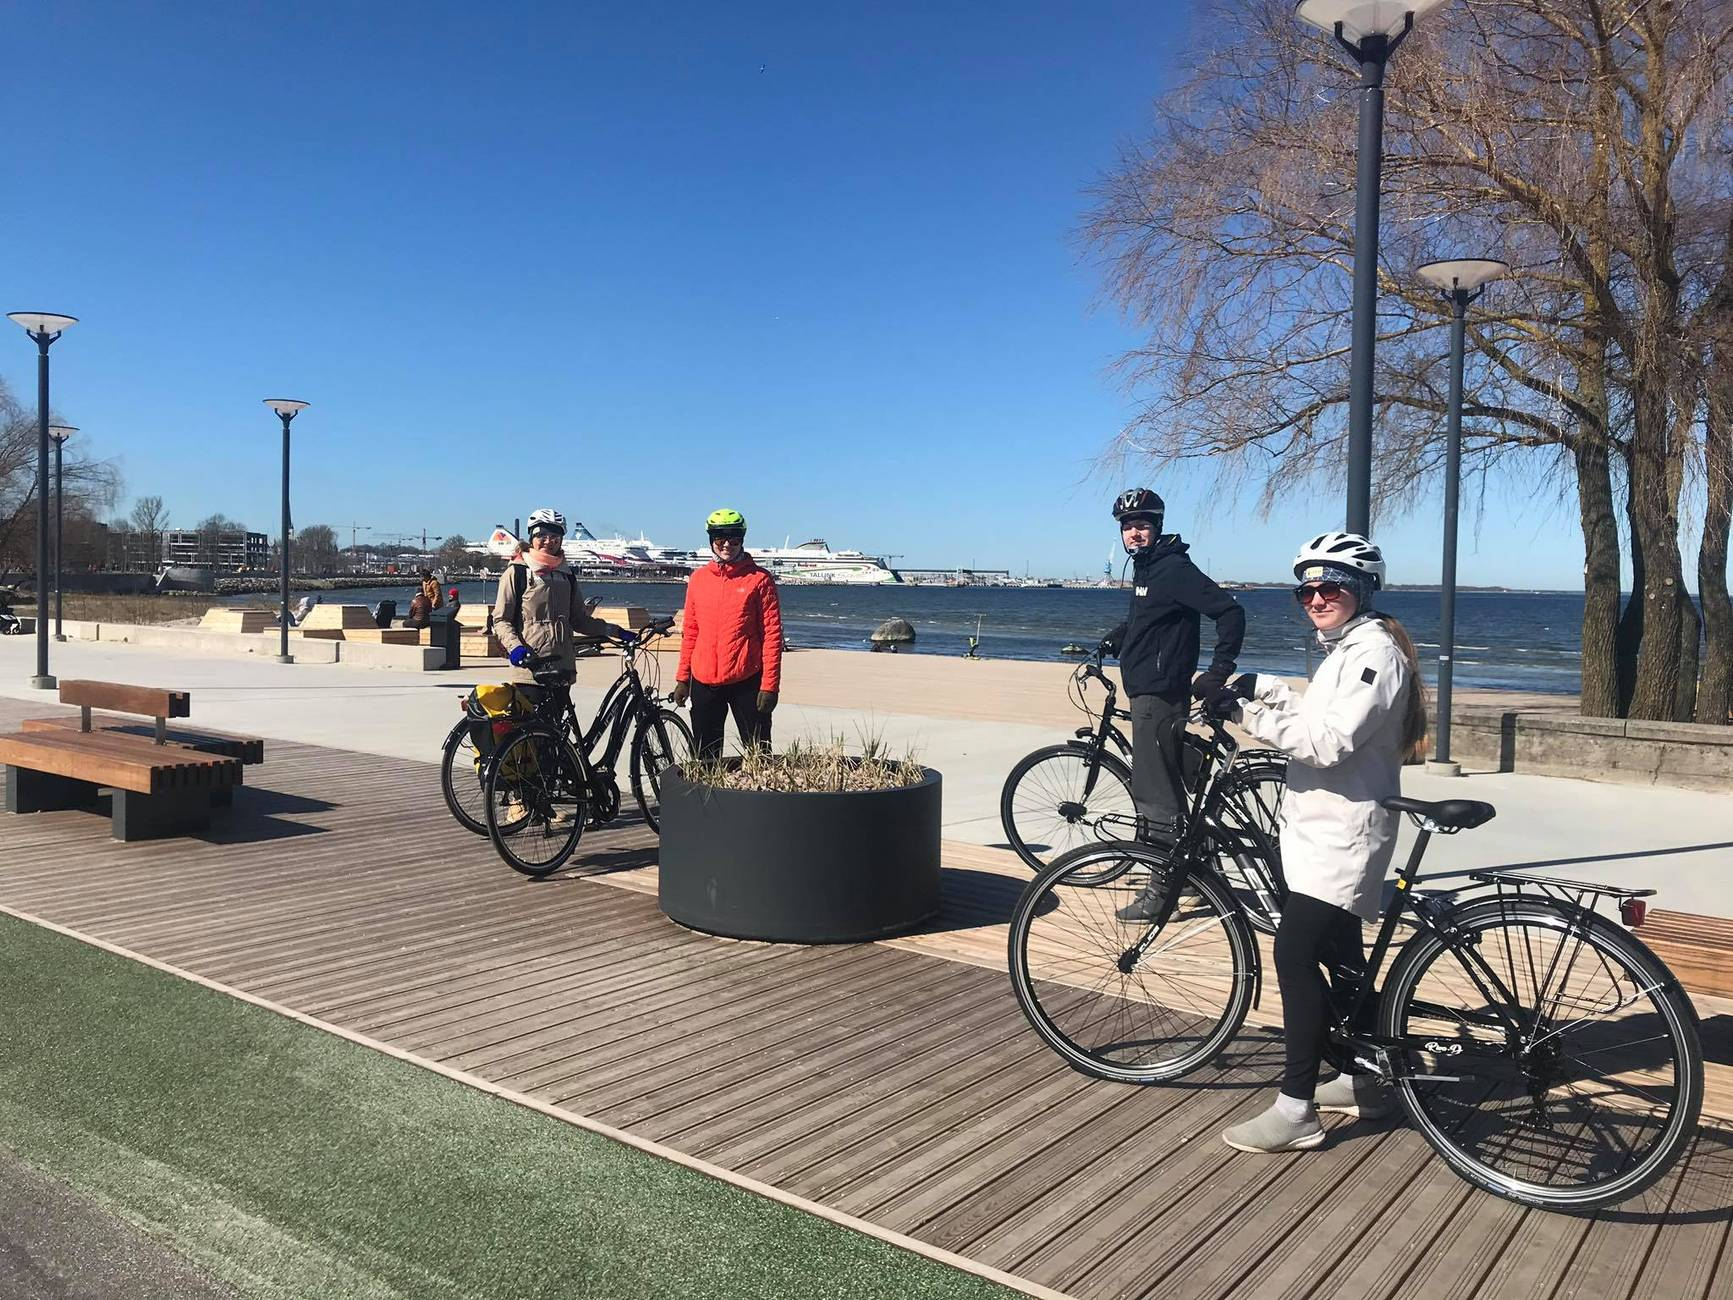 Bike tour in Pirita, Estonia